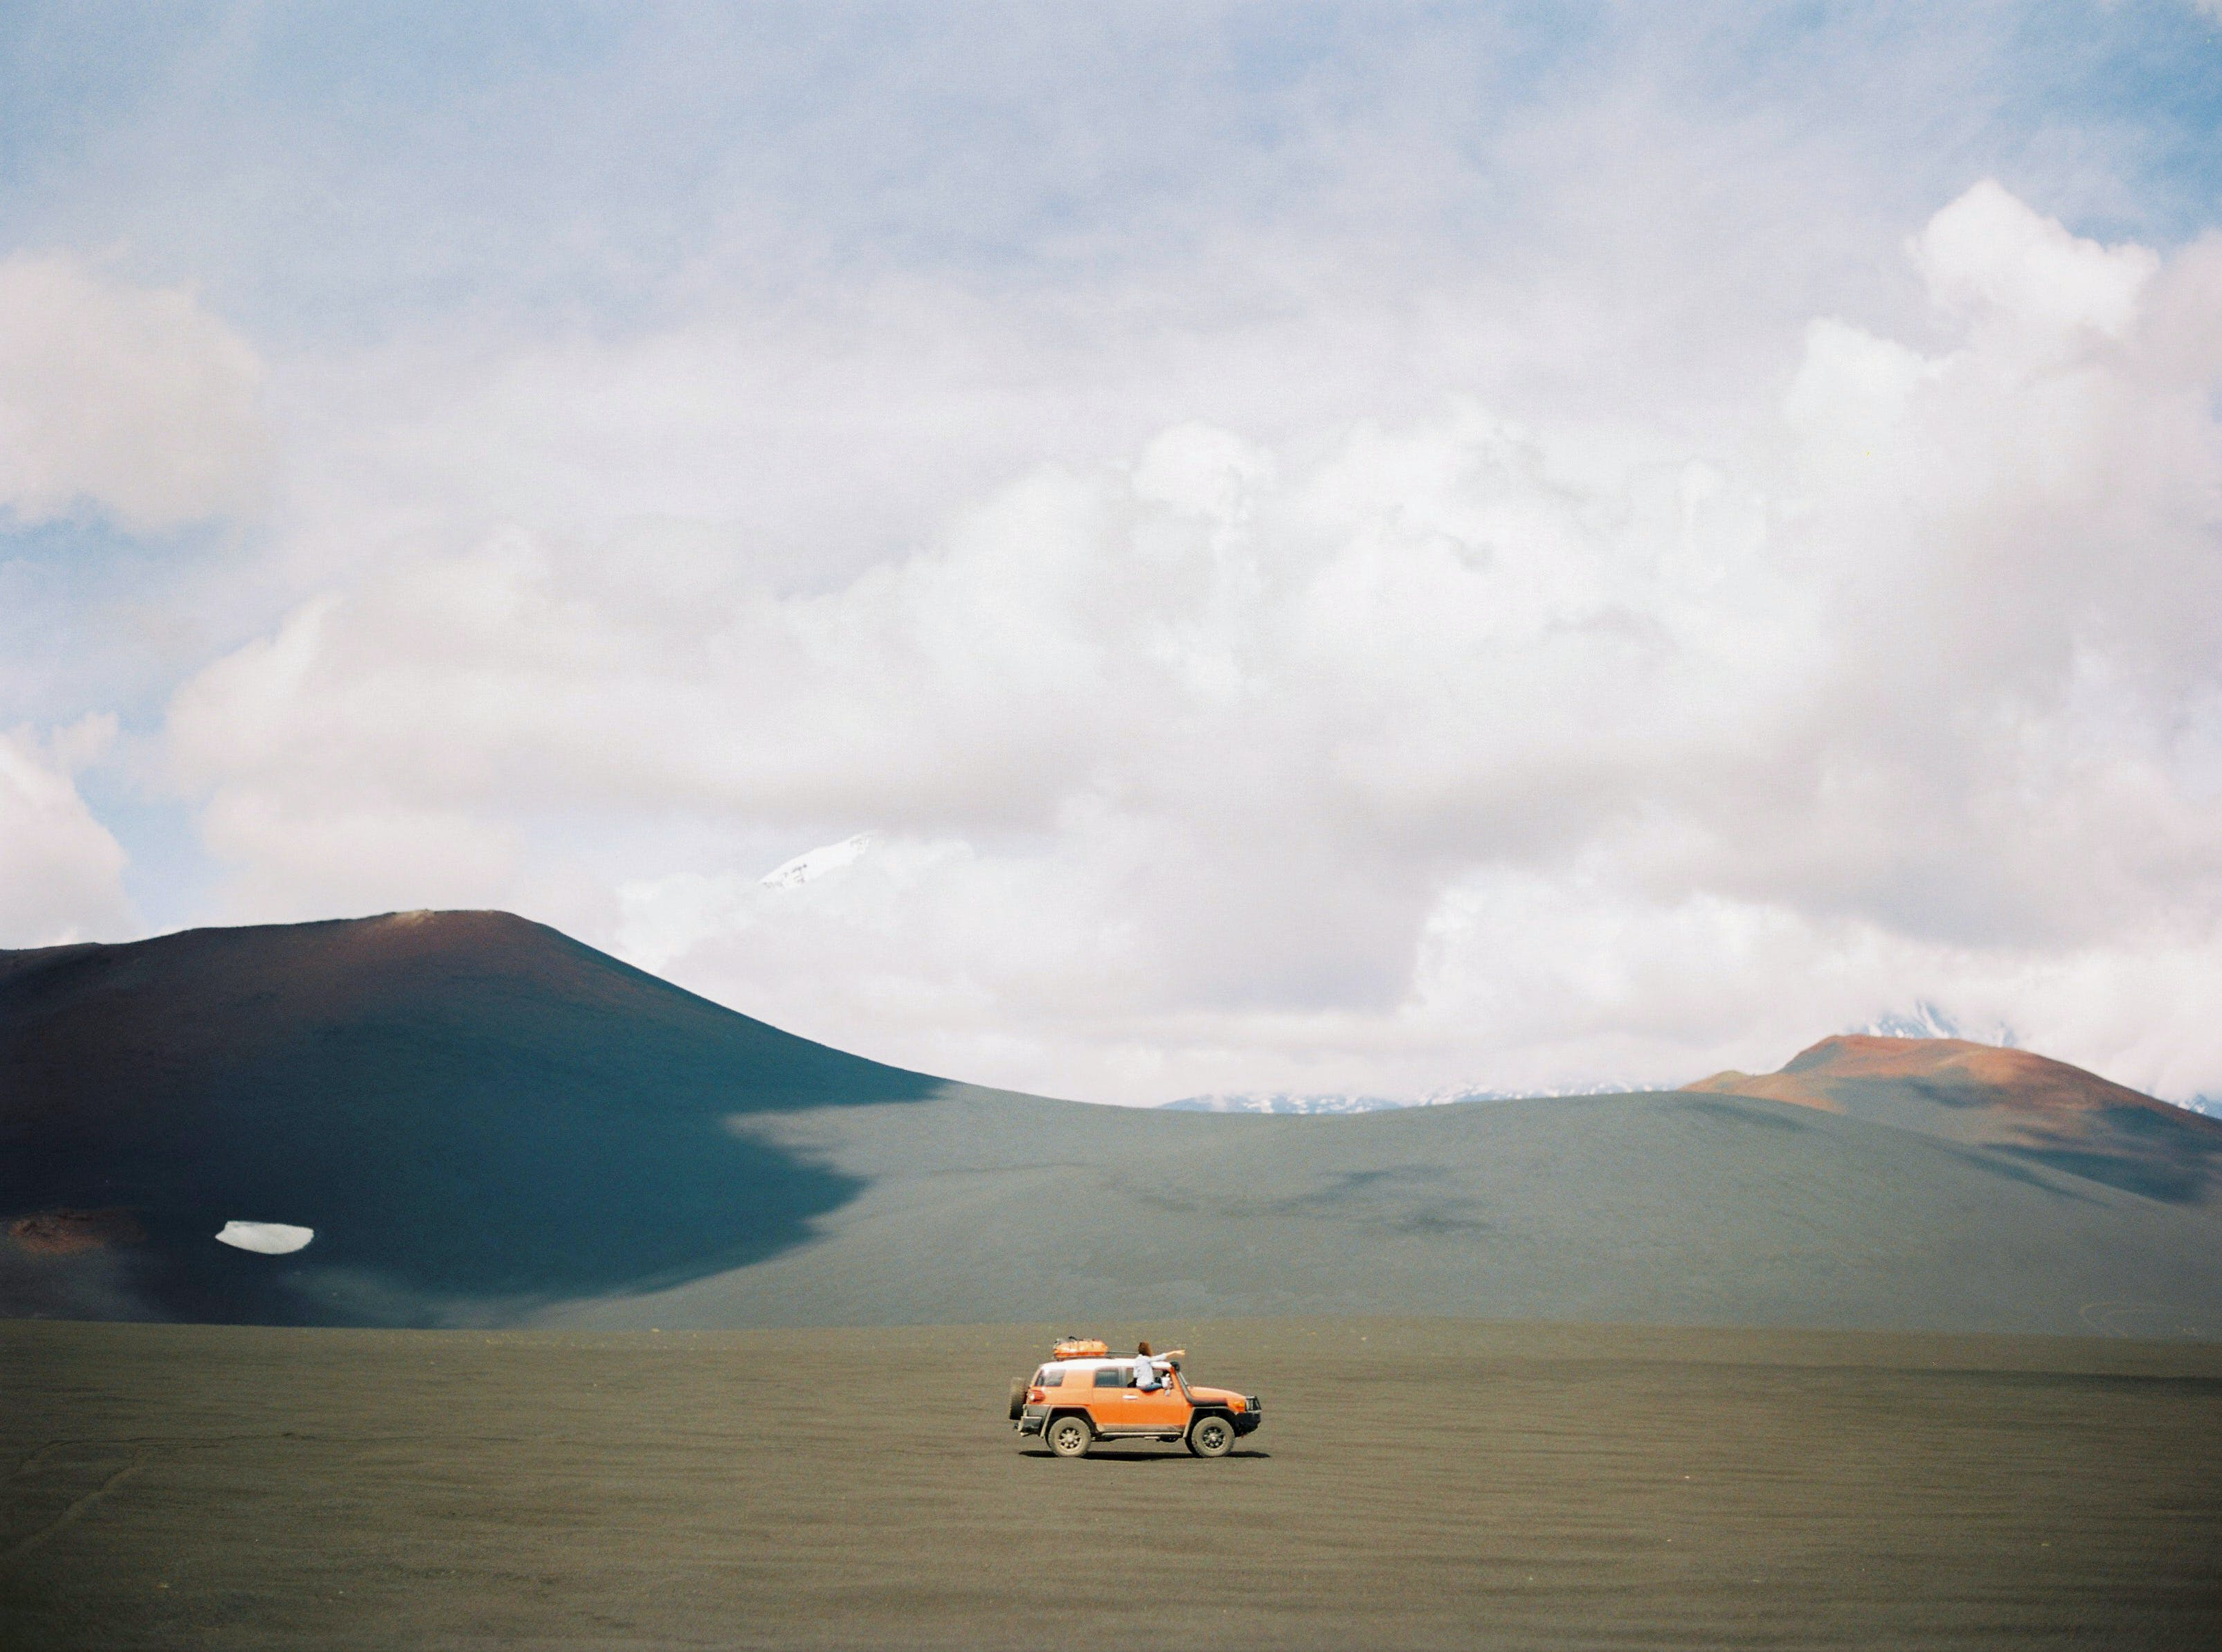 Orange Vehicle on Brown Sand